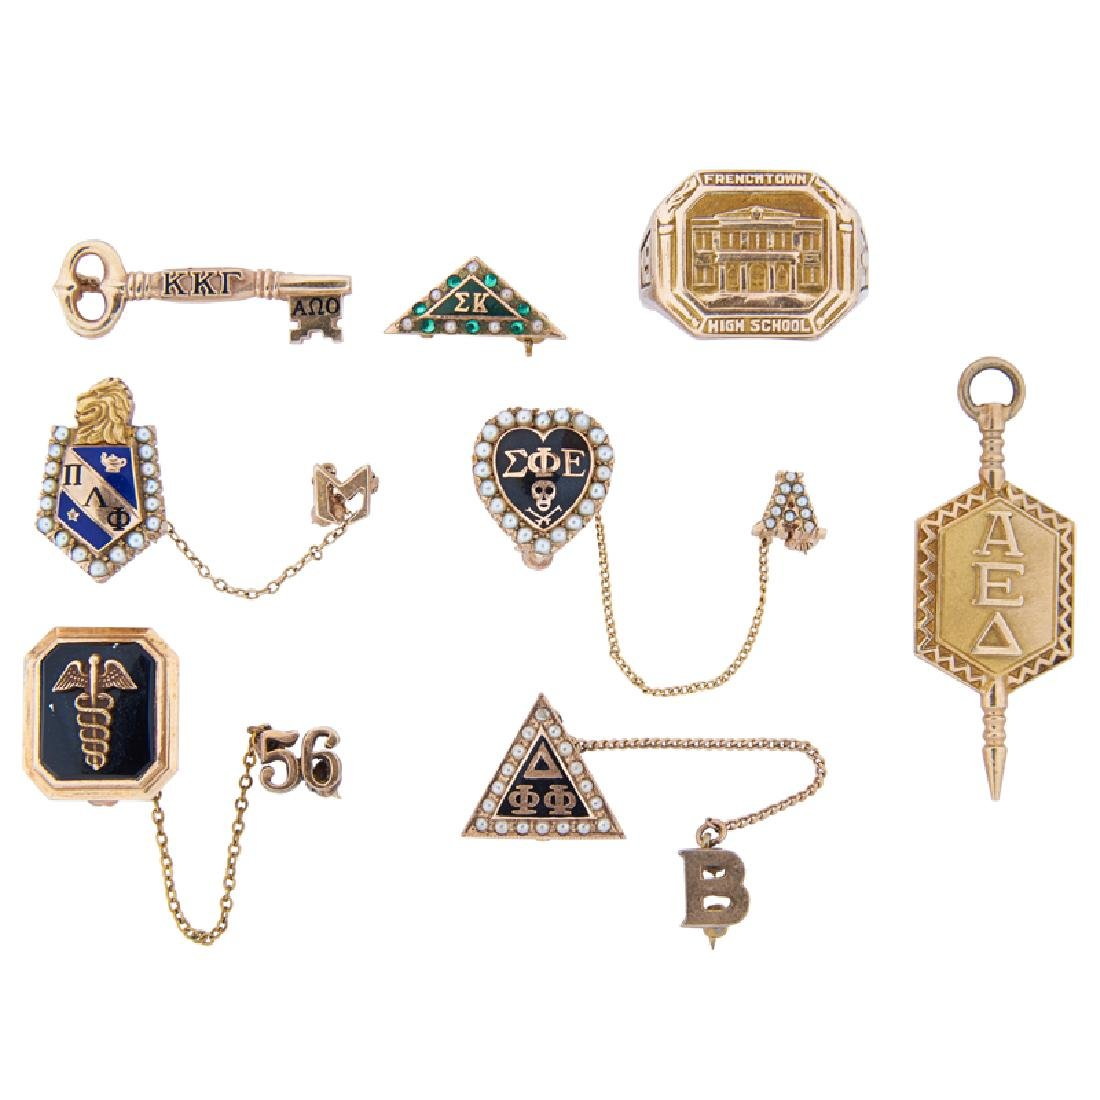 GROUP OF FRATERNAL OR SORORAL YELLOW GOLD JEWELRY